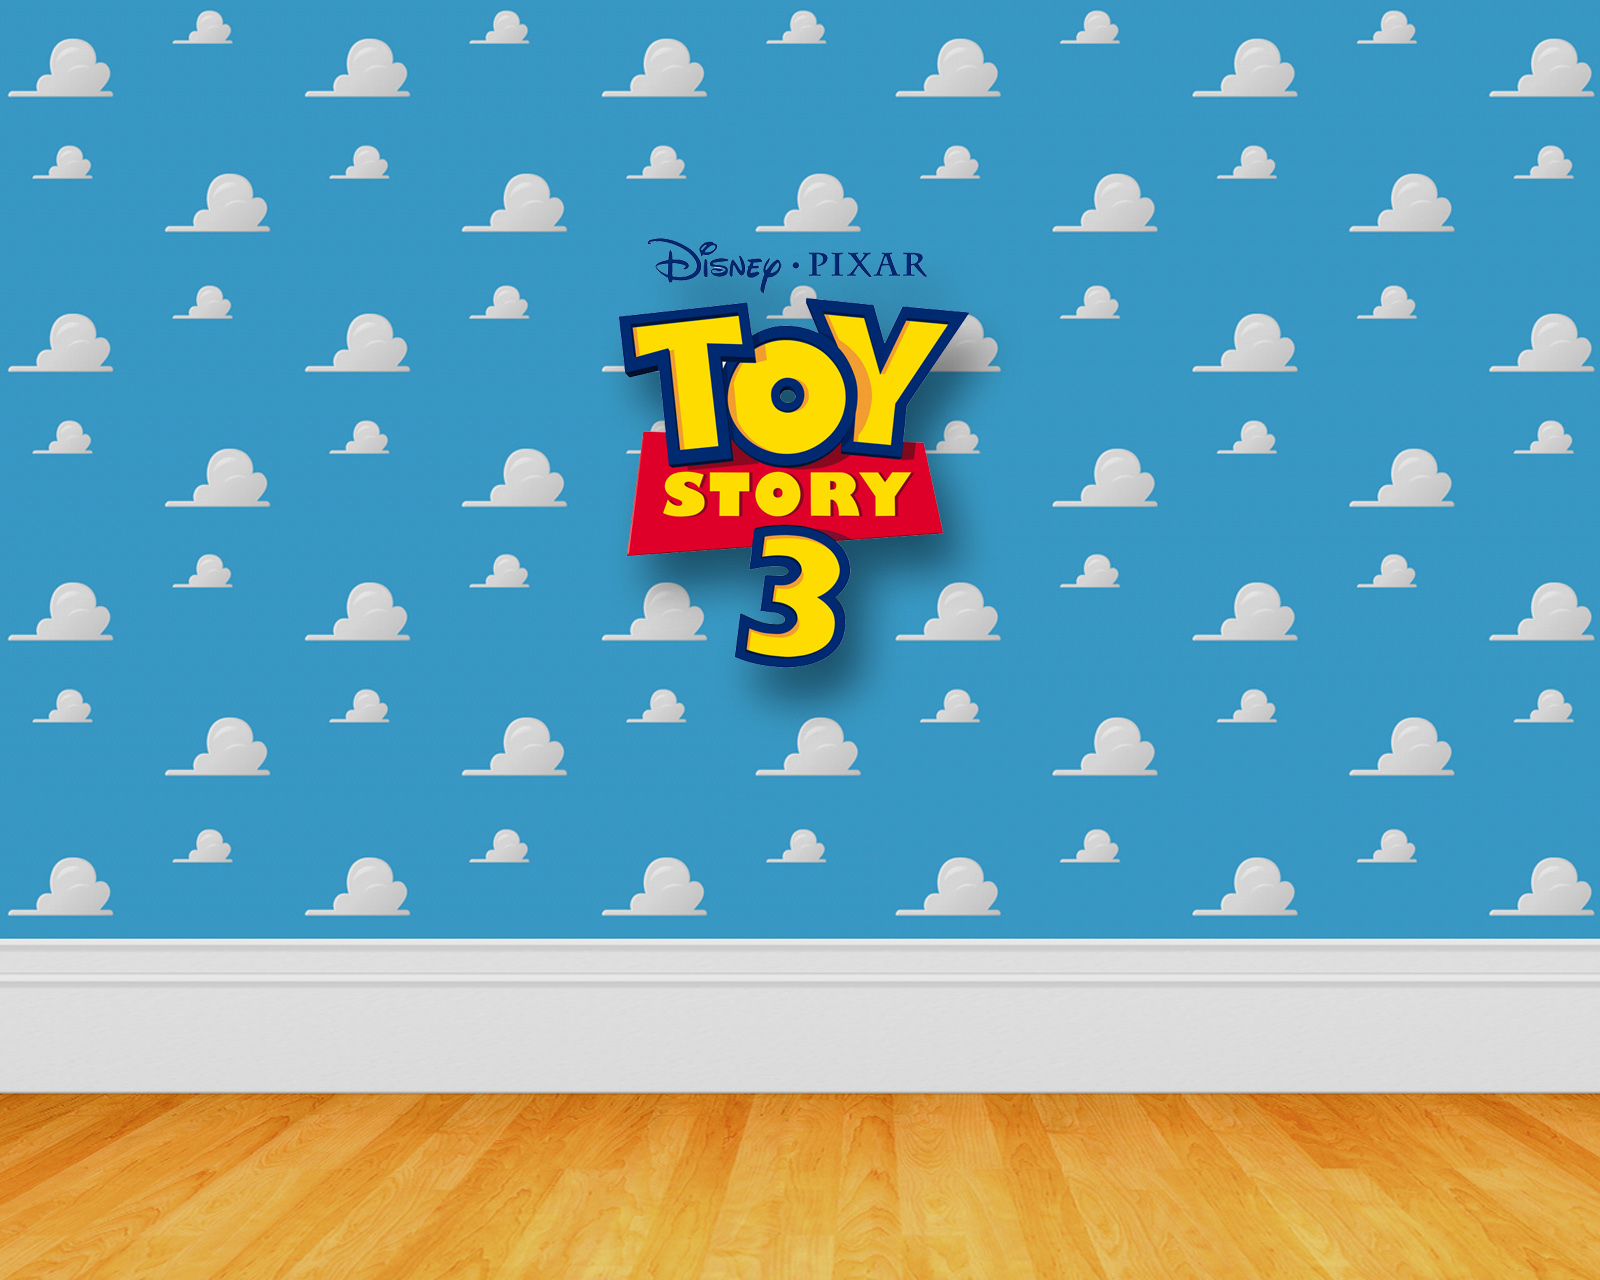 Glock Wallpaper Hd Central Wallpaper Toy Story 3 Hd Wallpaper Posters